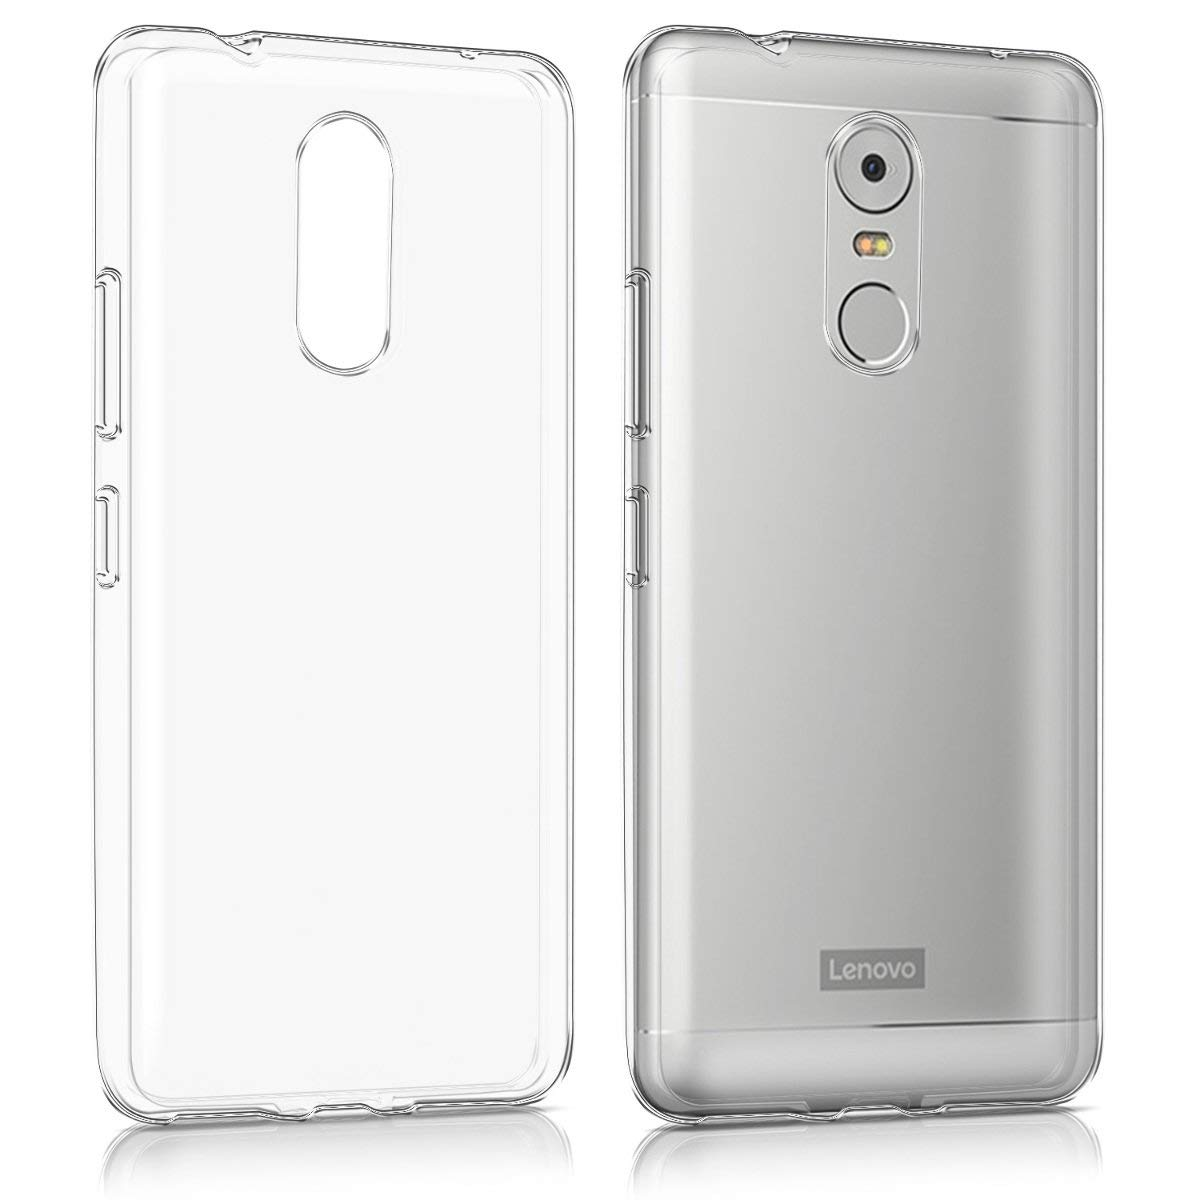 TPU Transparent silicon Cover For <font><b>Lenovo</b></font> K8 K5 K6 K3 Vibe A7000 A1010 <font><b>A2010</b></font> A2020 A6010 A6020 S90 Note P2 Z5 For <font><b>Lenovo</b></font> P70 <font><b>Case</b></font> image